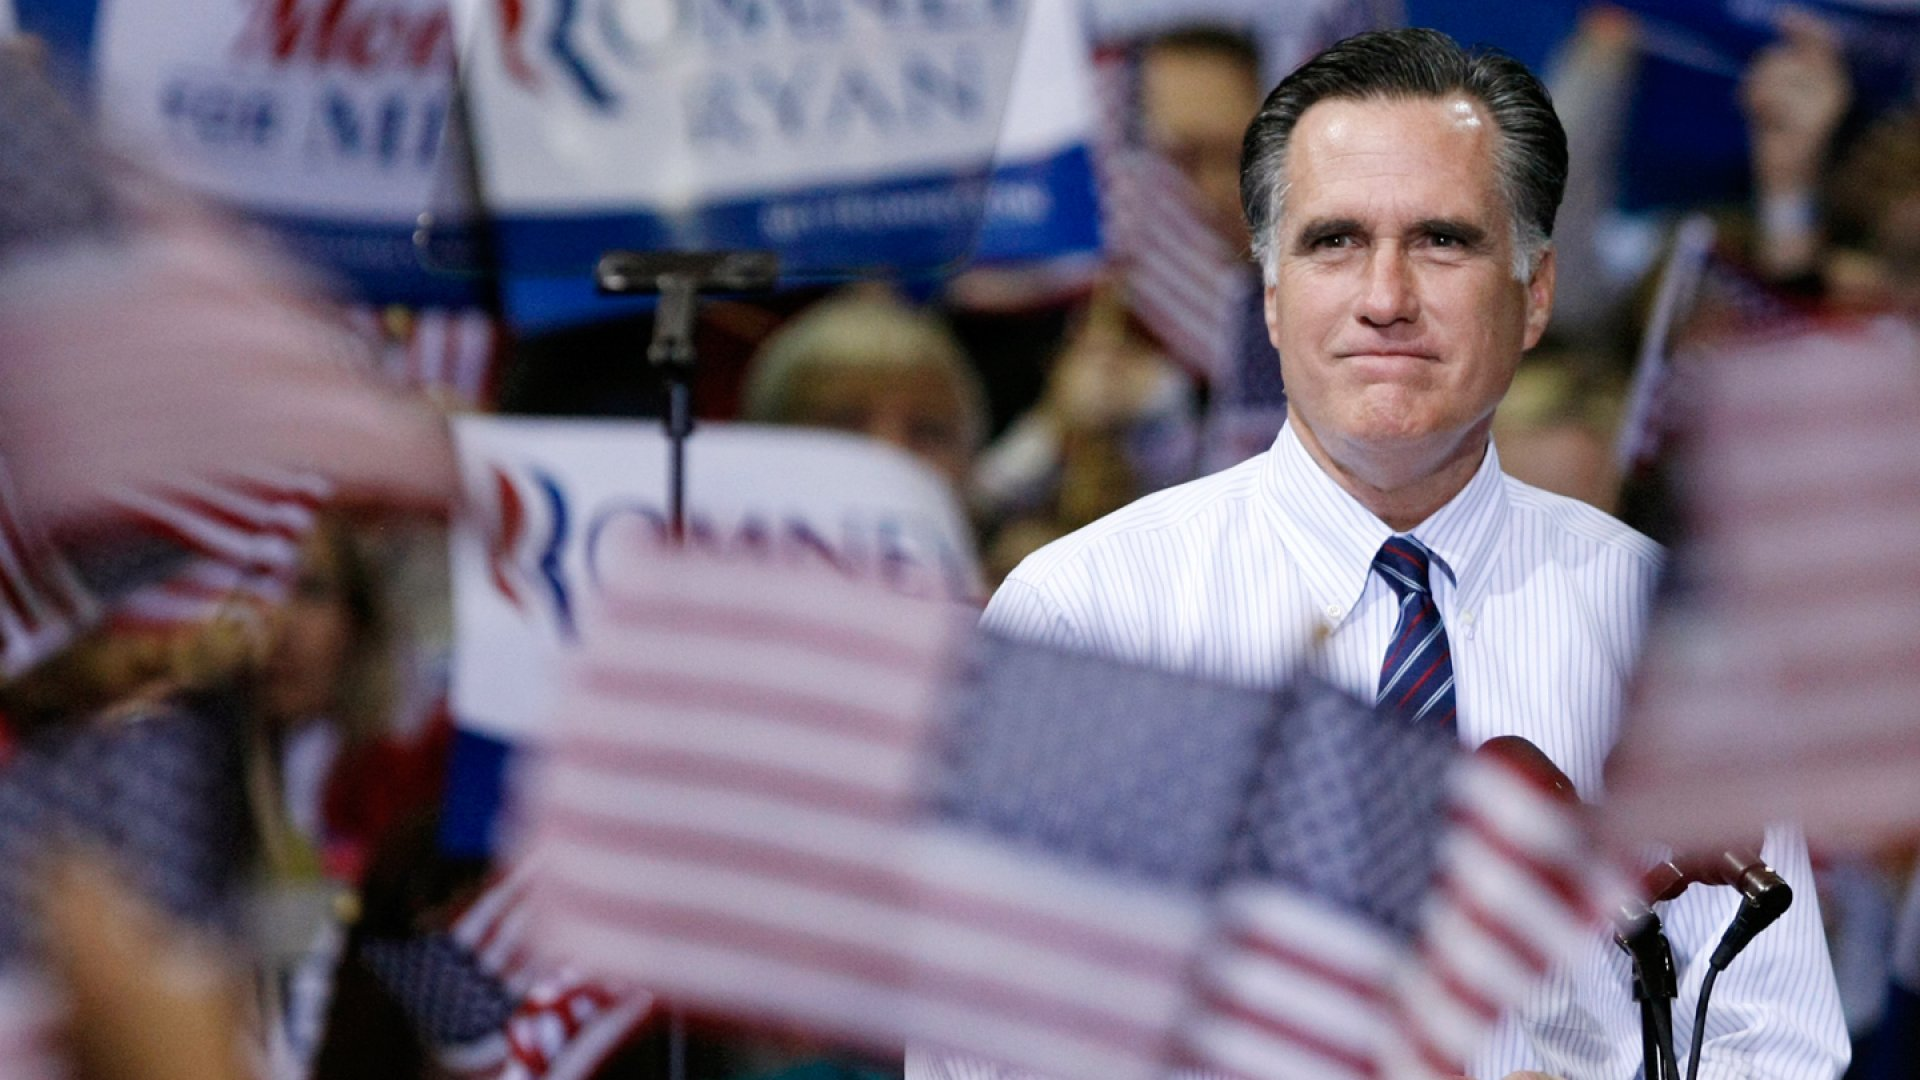 Why 57 Million People Voted for Mitt Romney